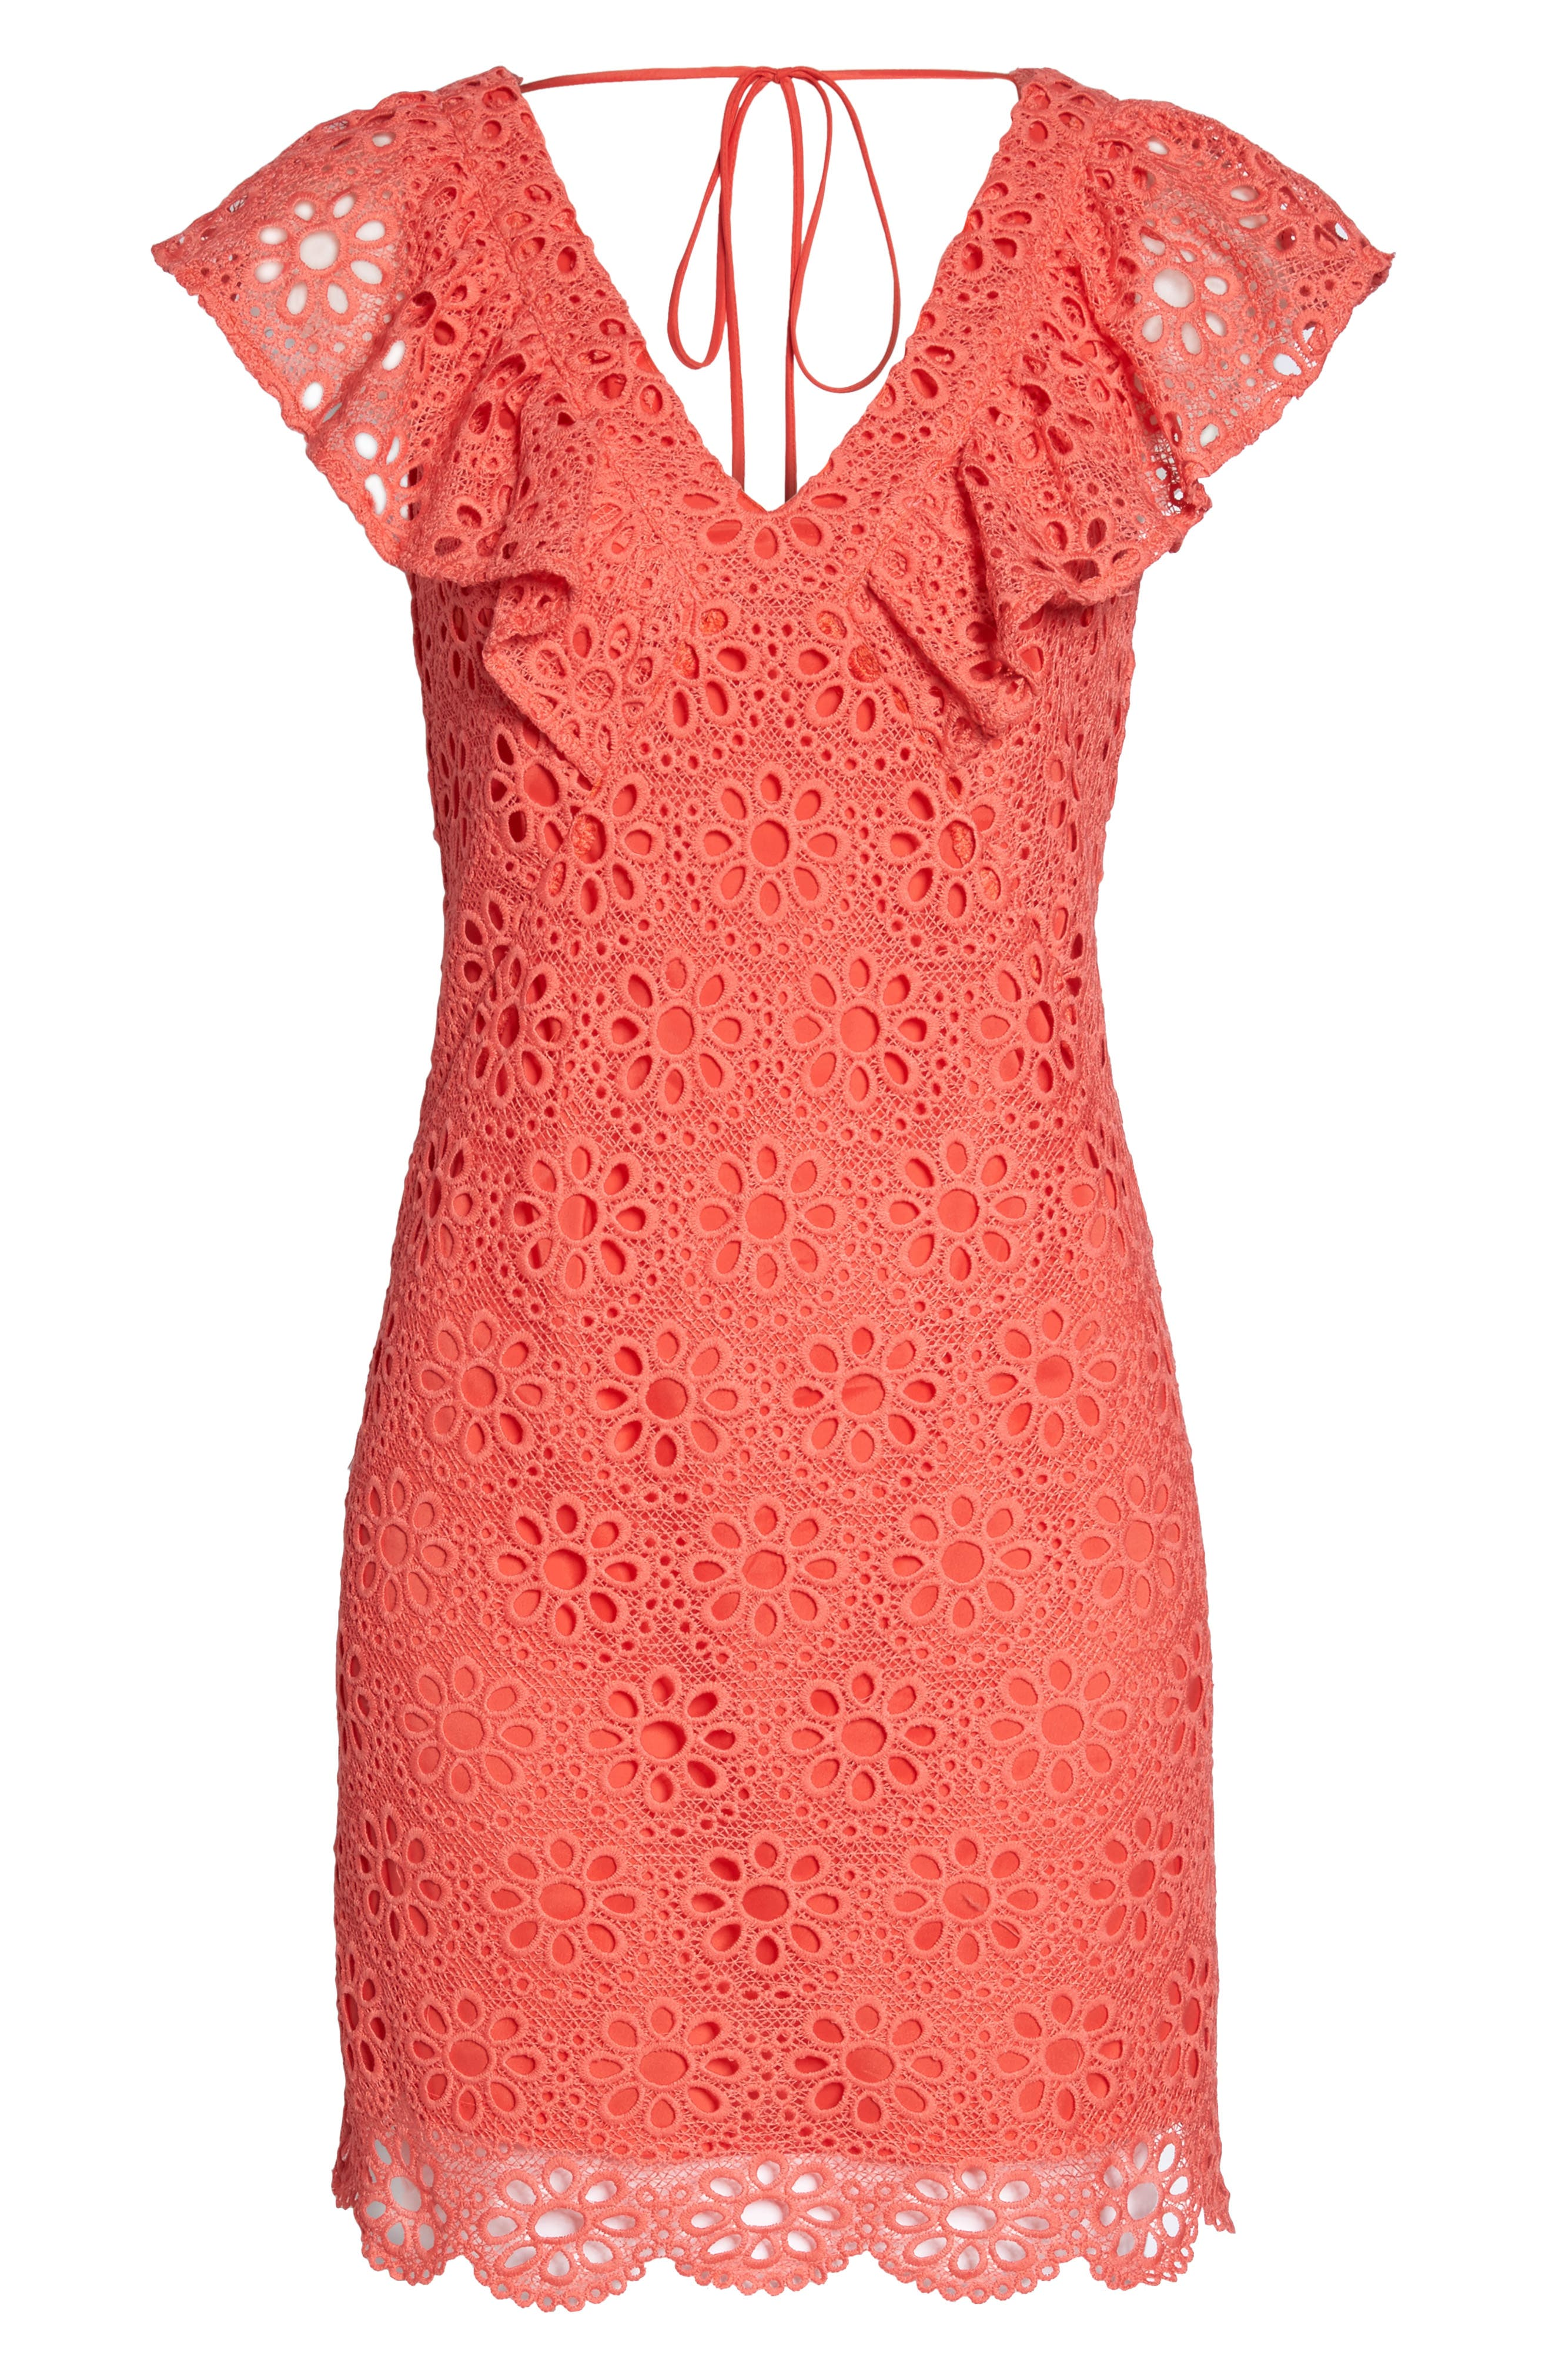 Neriah Eyelet Embroidered Dress,                             Alternate thumbnail 7, color,                             CORAL LILLY